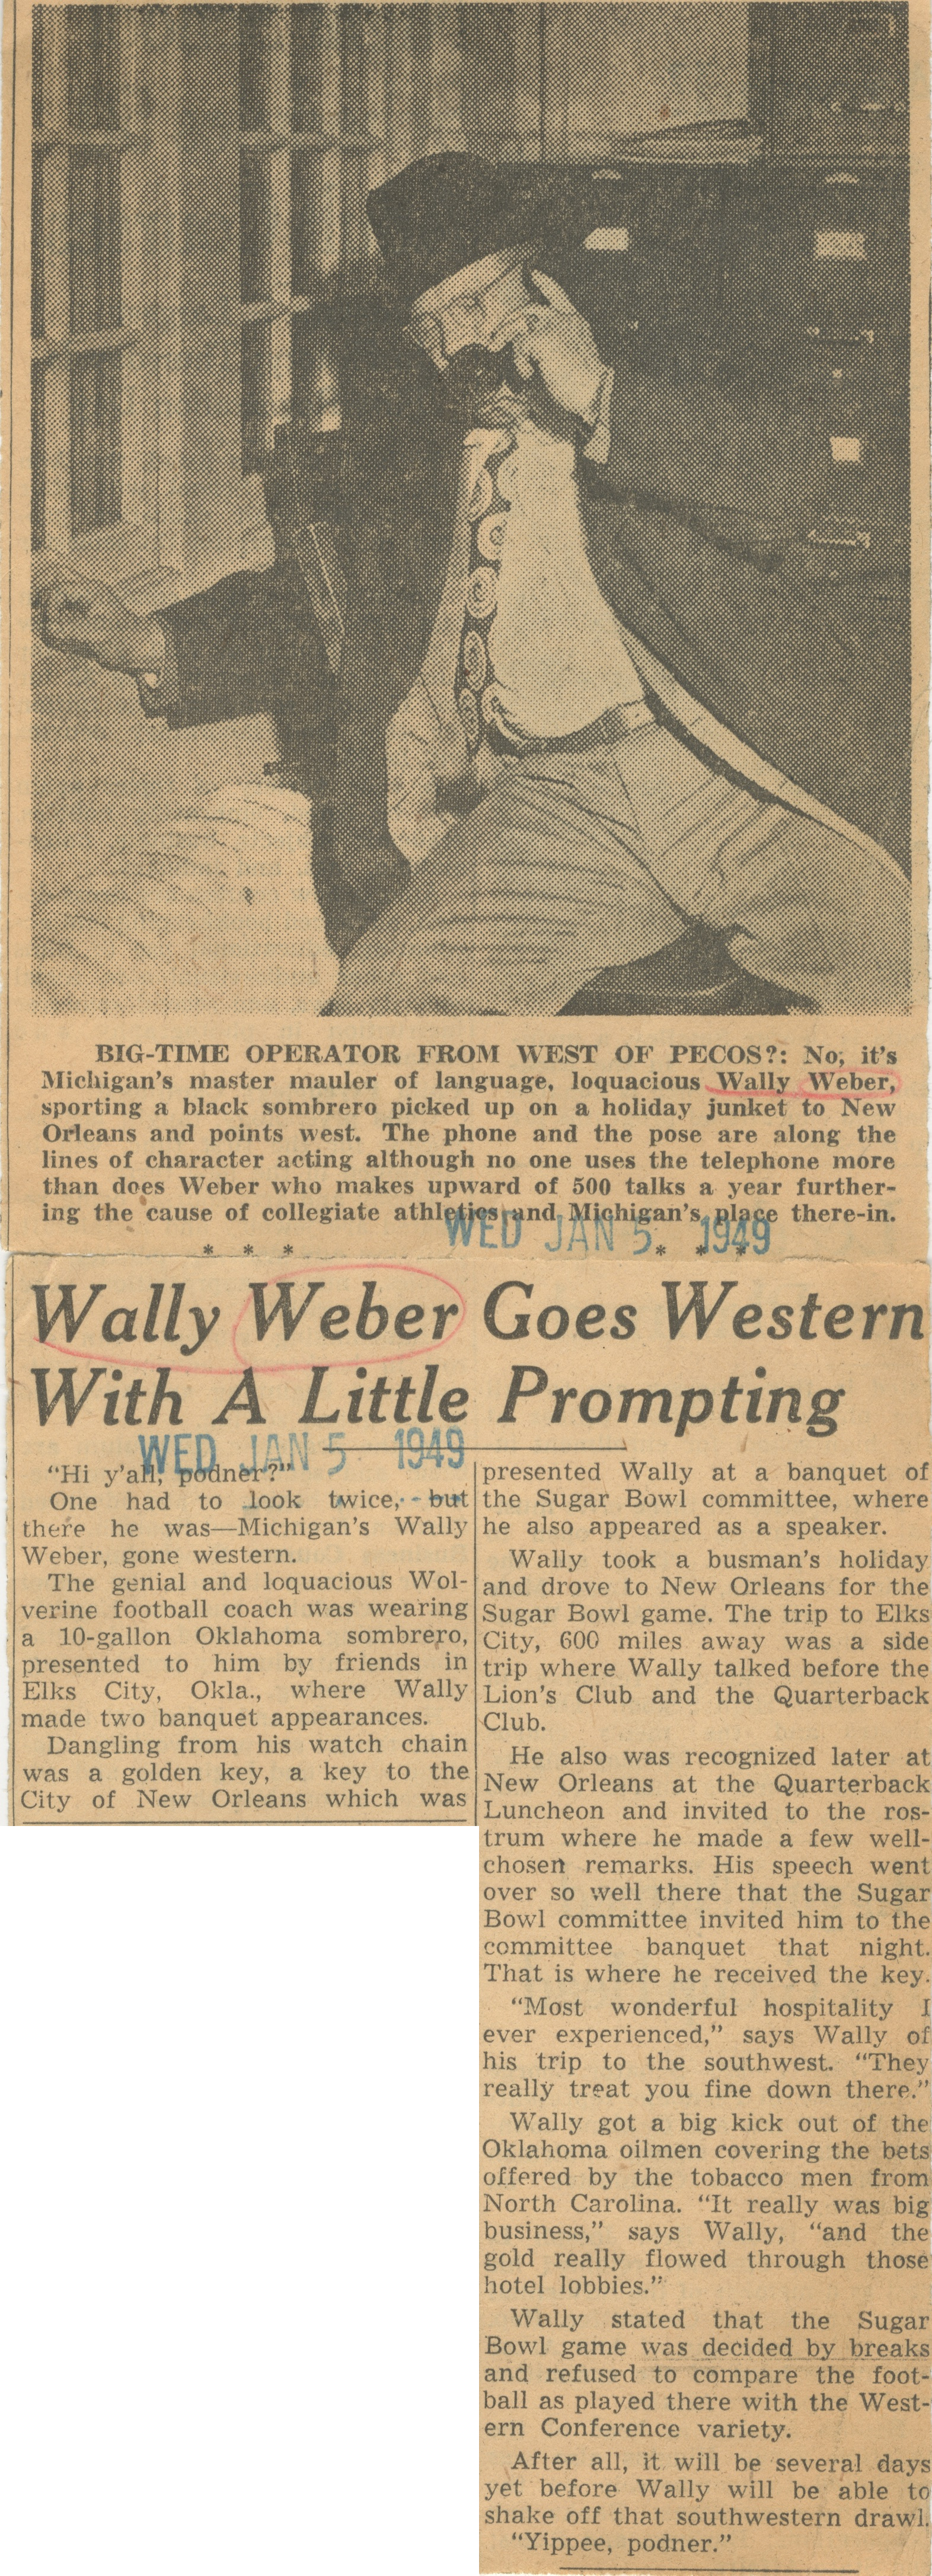 Wally Weber Goes Western With A Little Prompting image